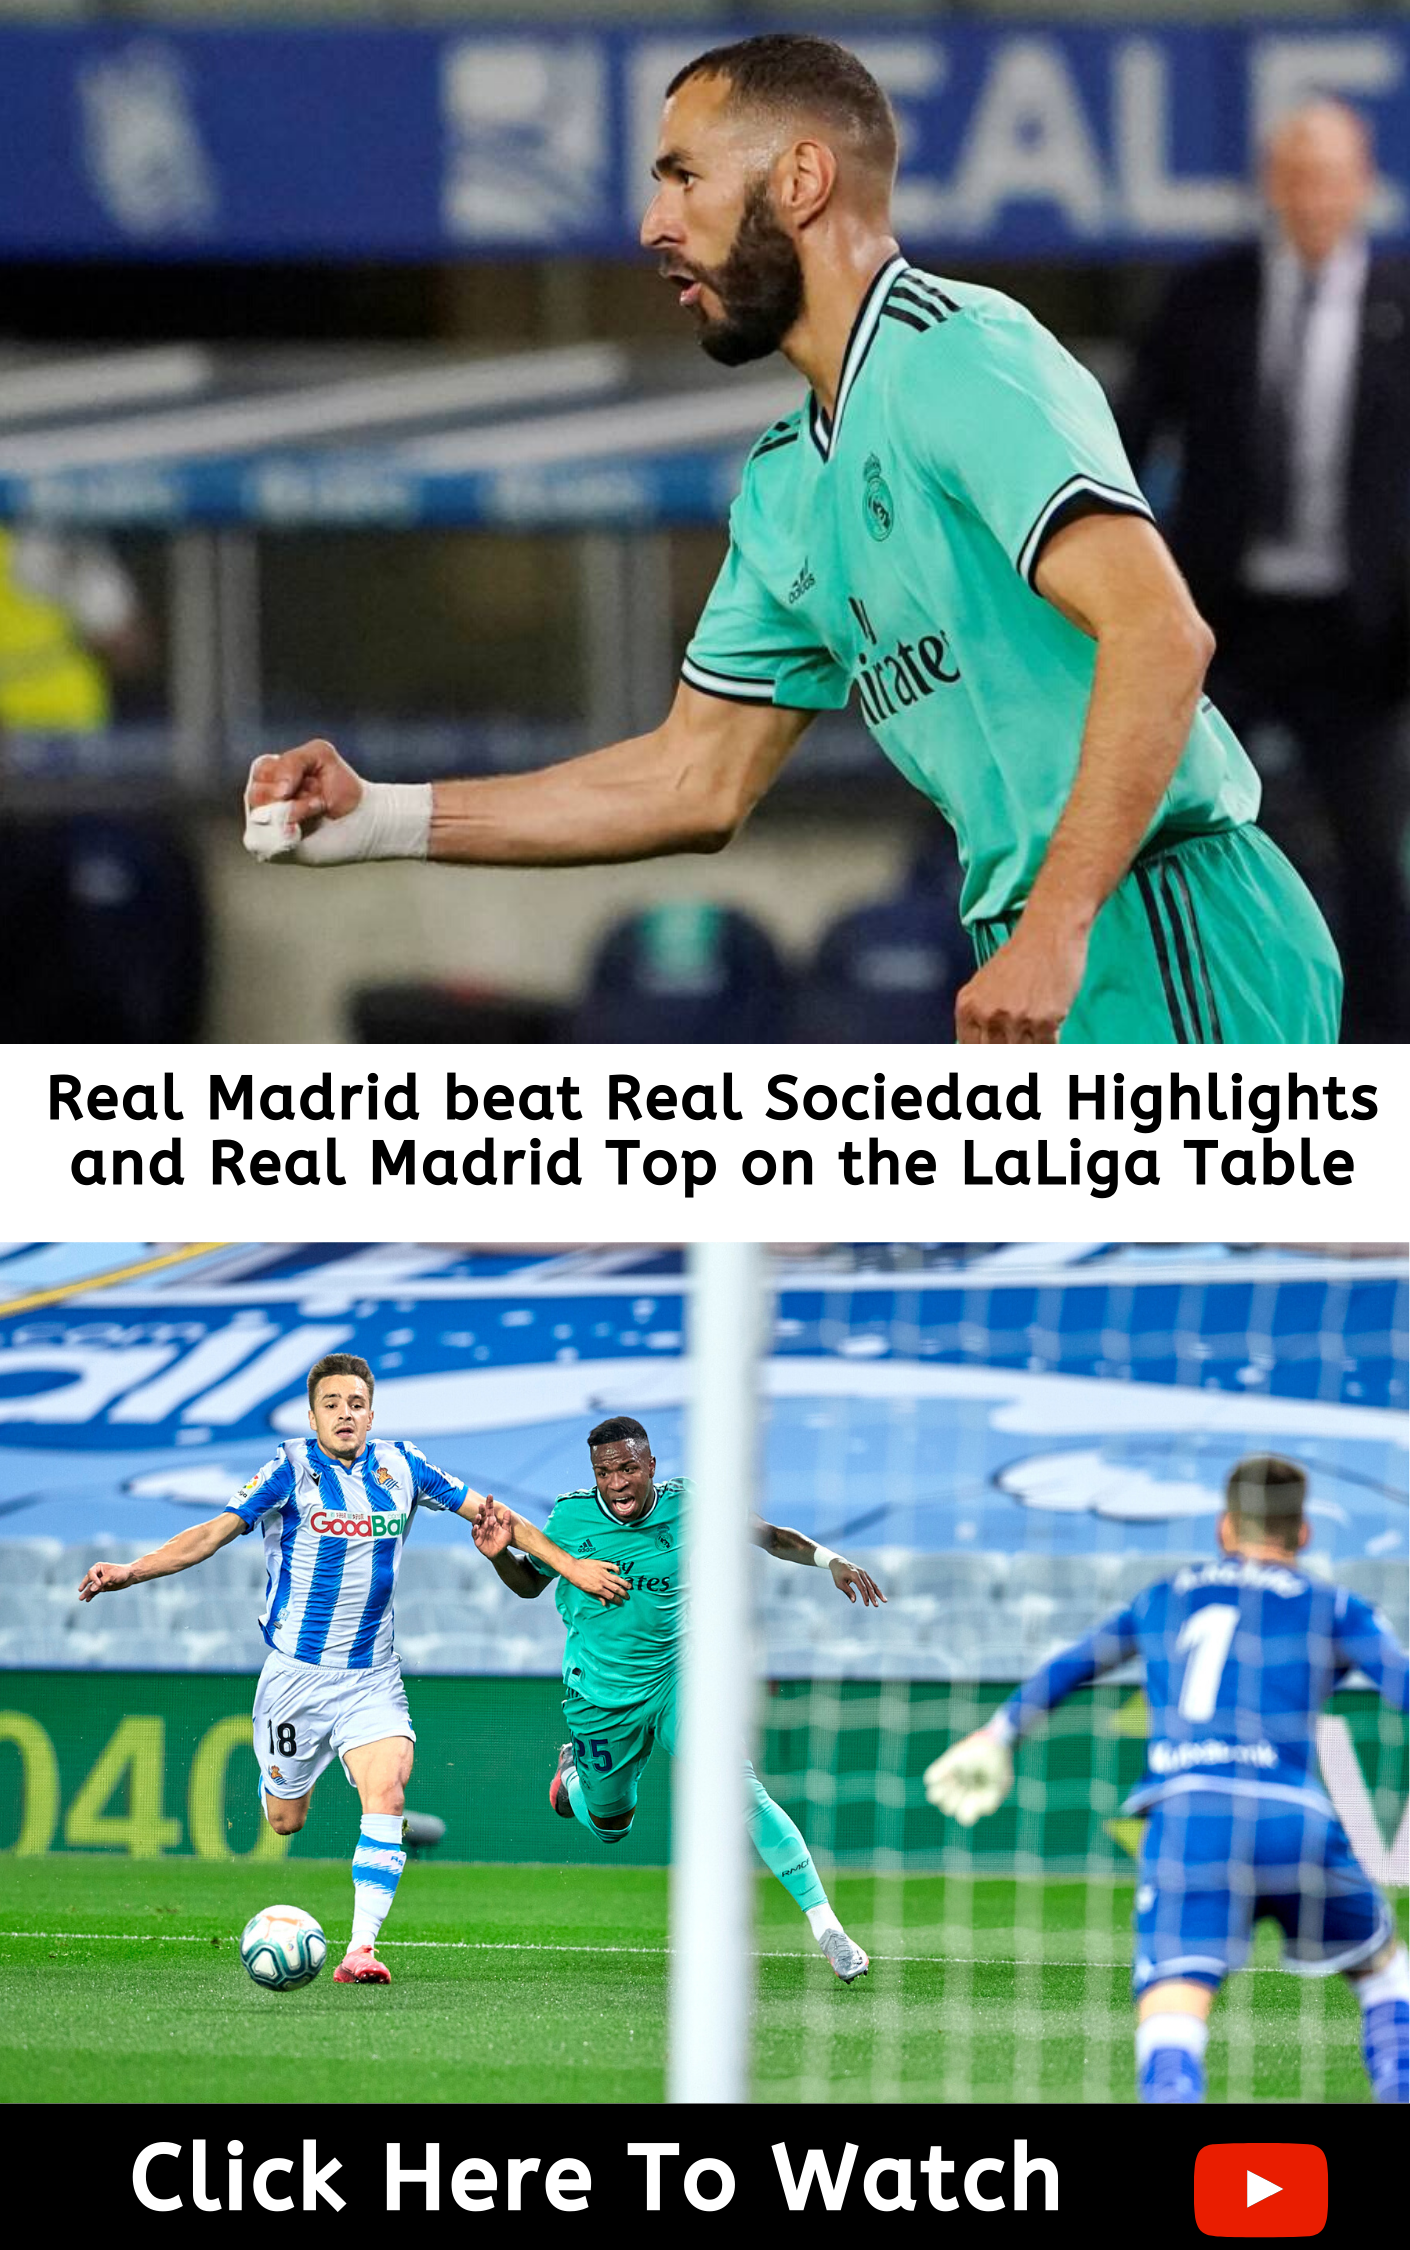 Real Madrid Beat Real Sociedad Highlights And Real Madrid Top On The Laliga Table In 2020 Real Sociedad Real Madrid Madrid